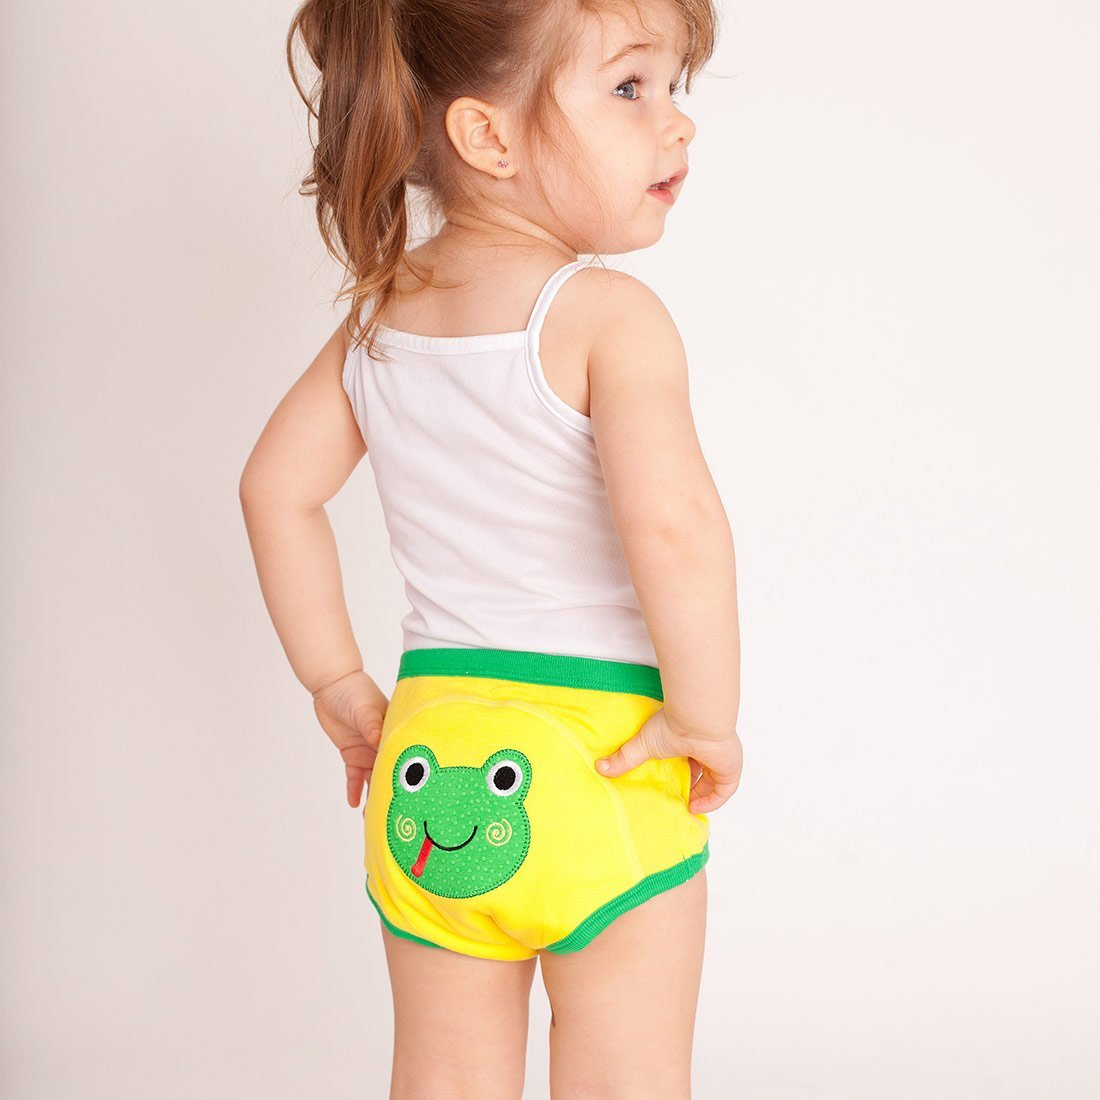 ZOOCCHINI 1 Piece Organic Potty Training Pant - Flippy the Frog